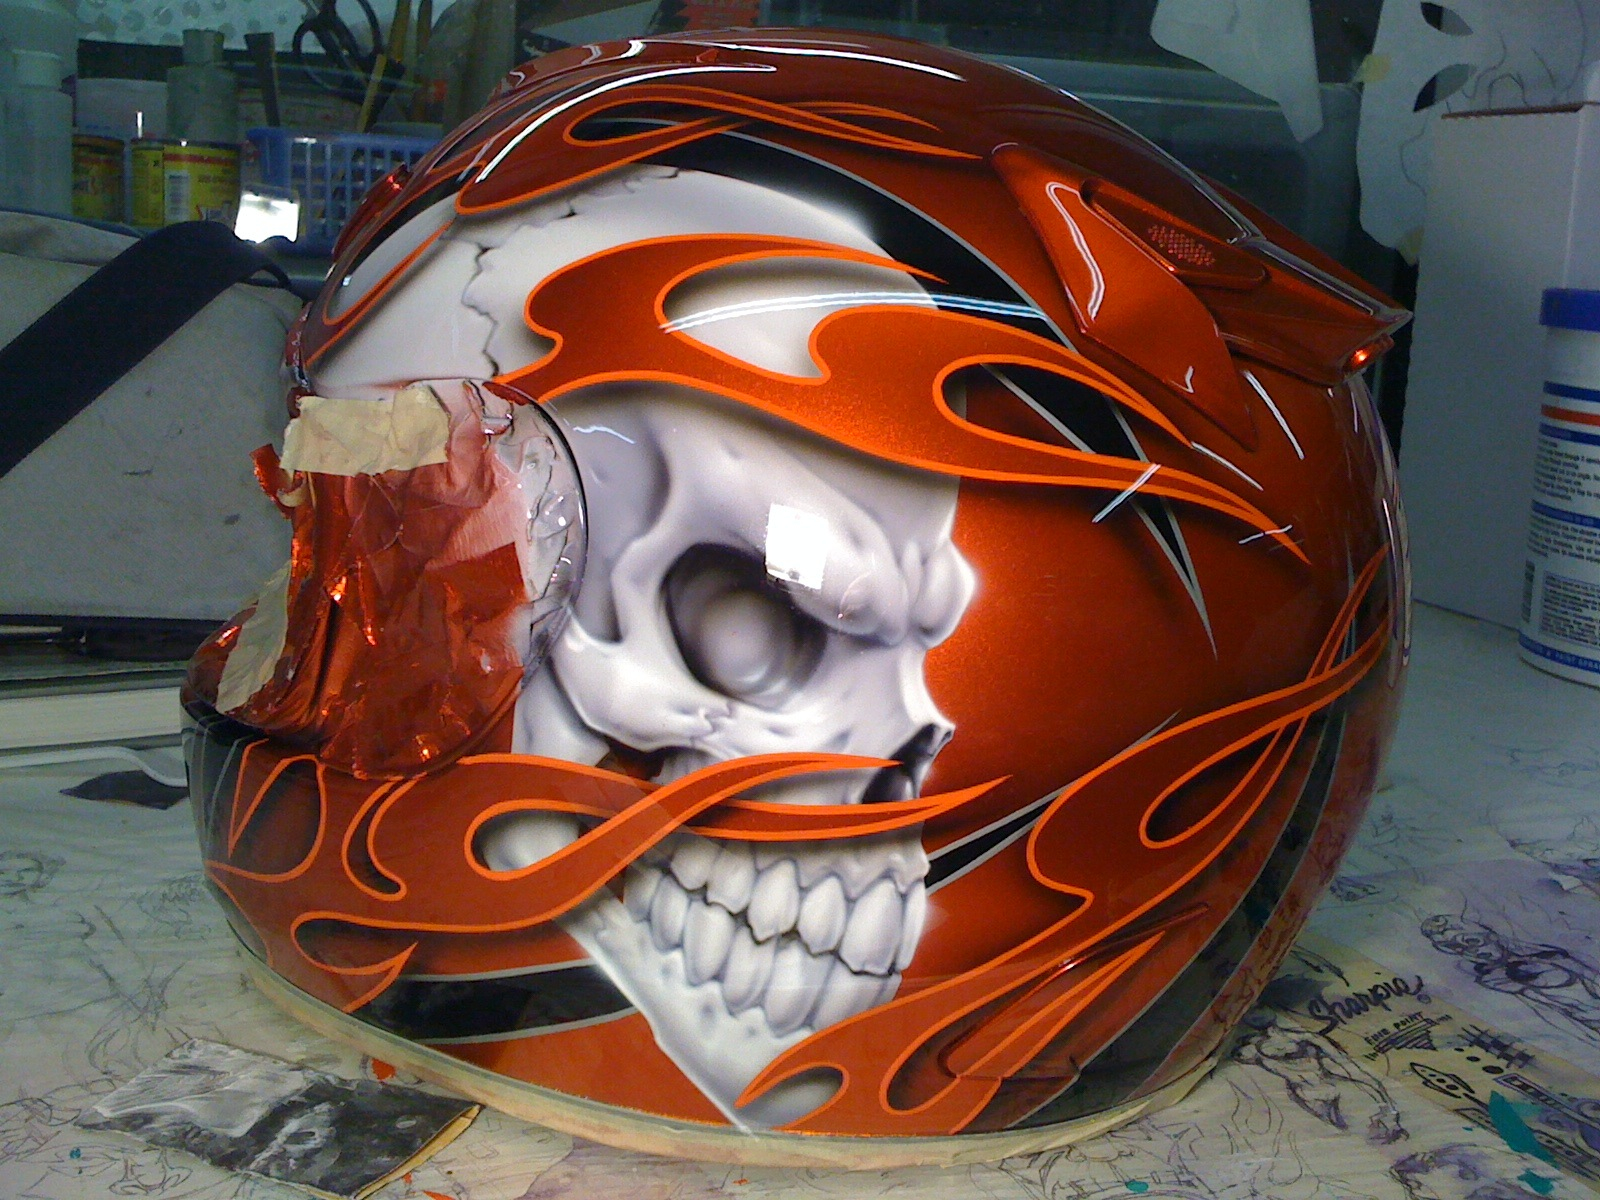 skull and flames on helmet